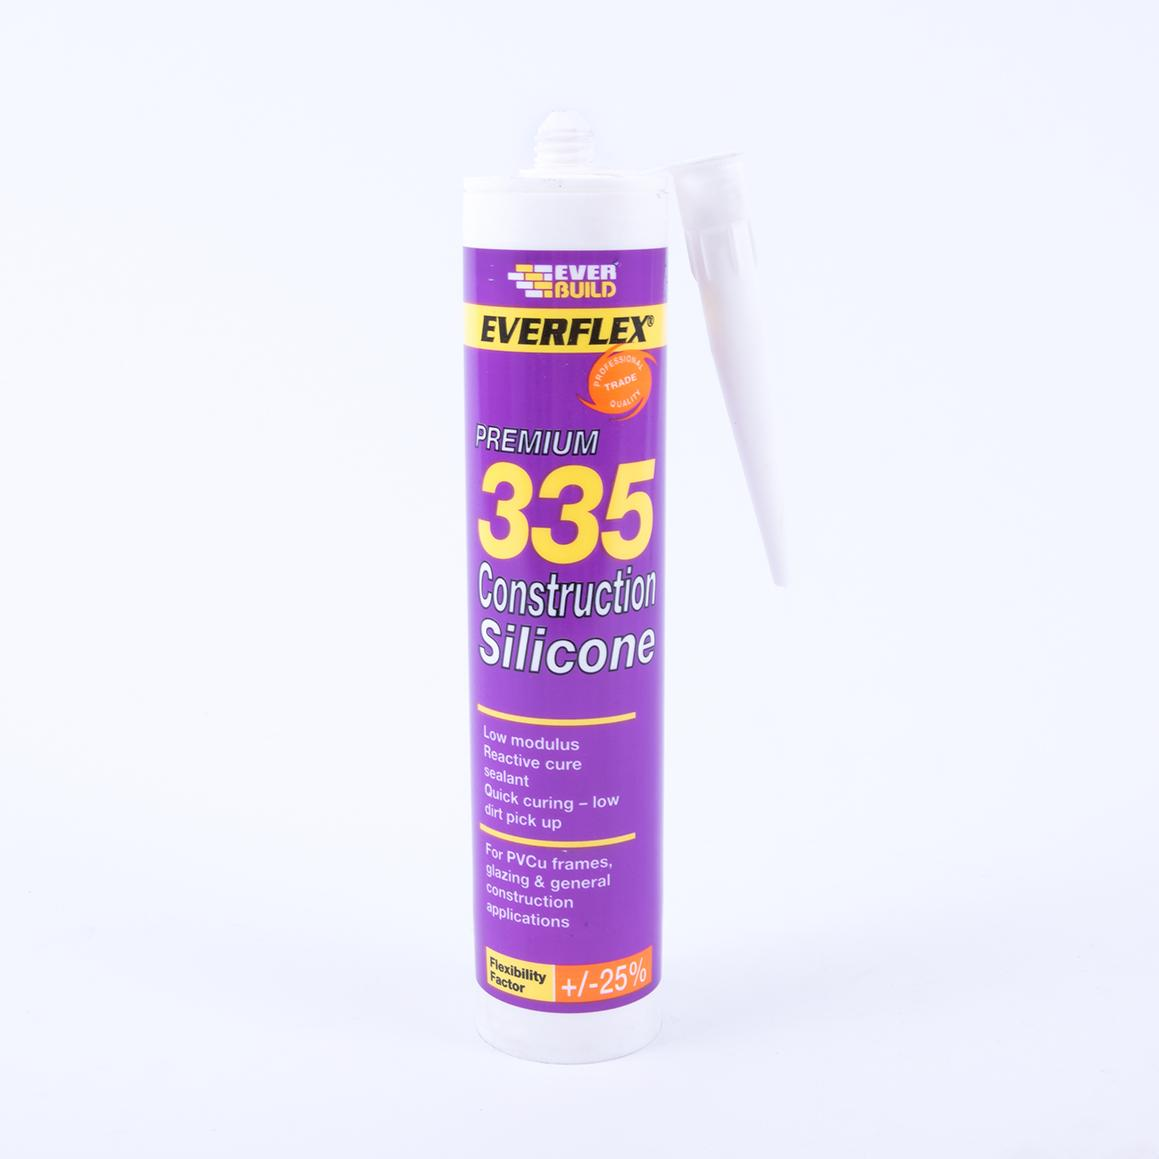 Construction Chemicals, Grouts, Mortars and Resins